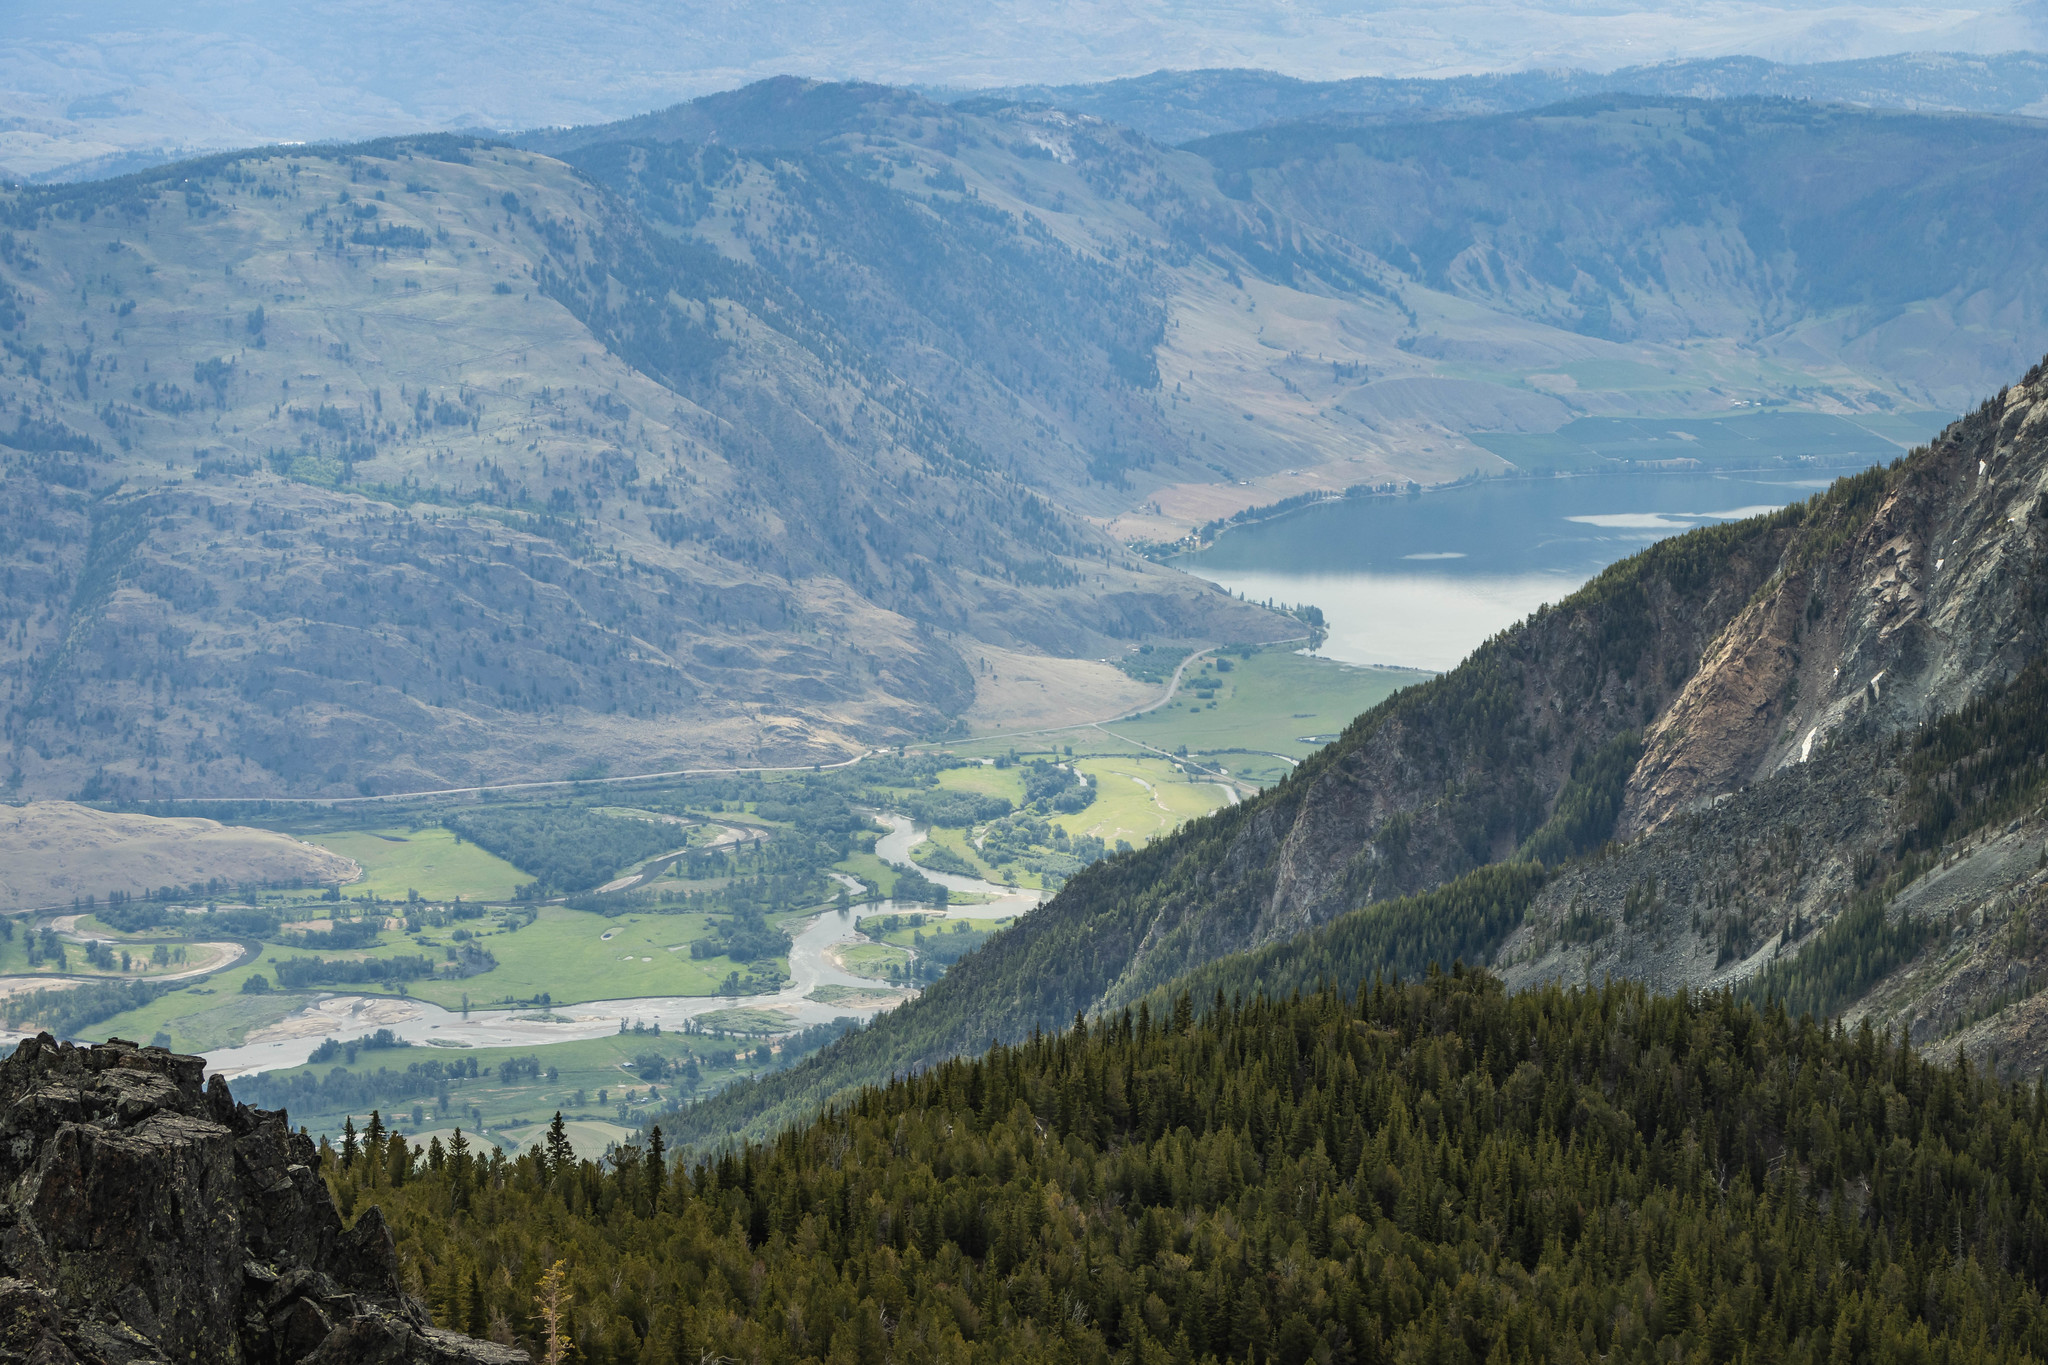 Similkameen River Valley with some Palmer Lake